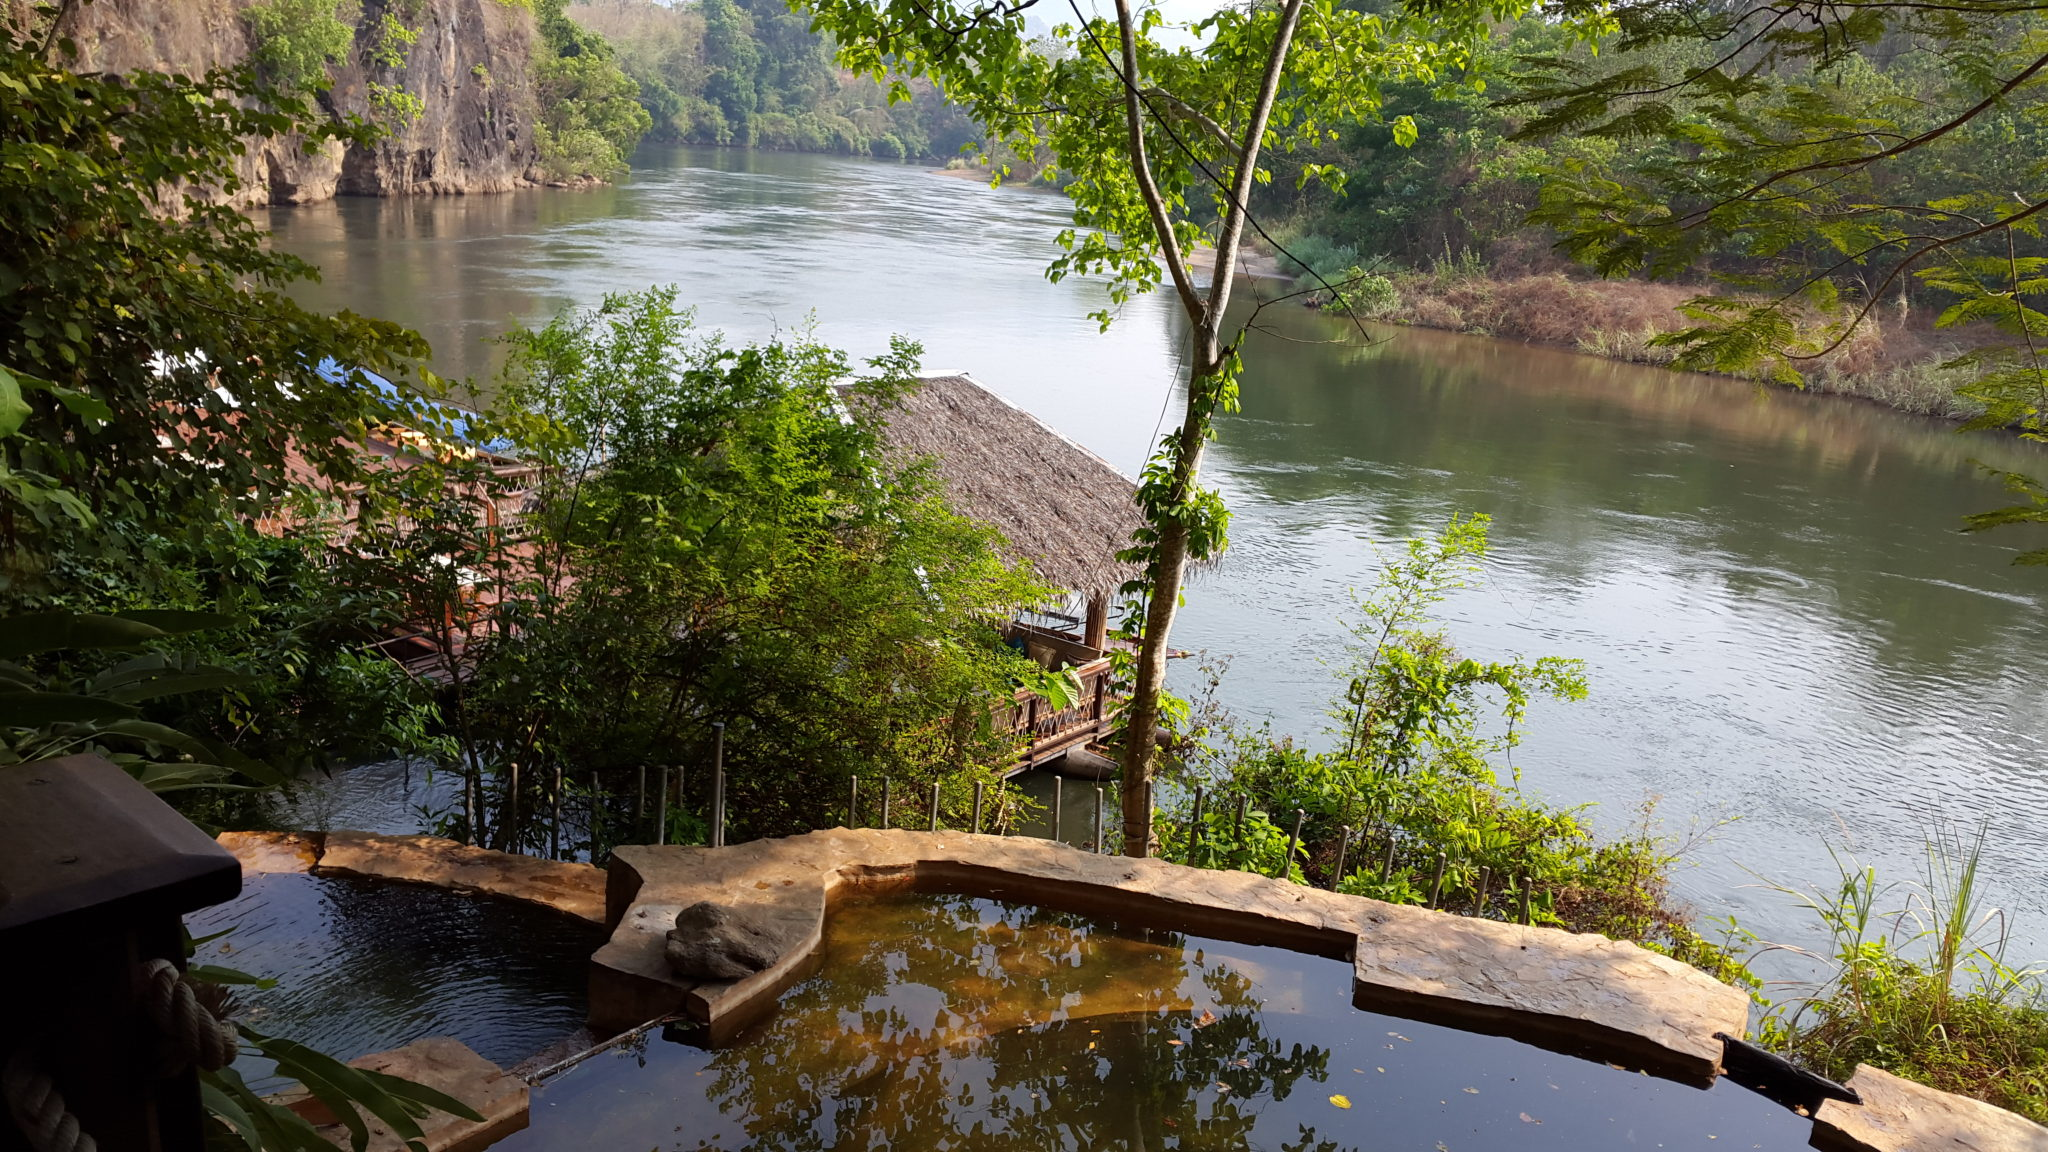 The pool at Hintok River Camp, Thailand